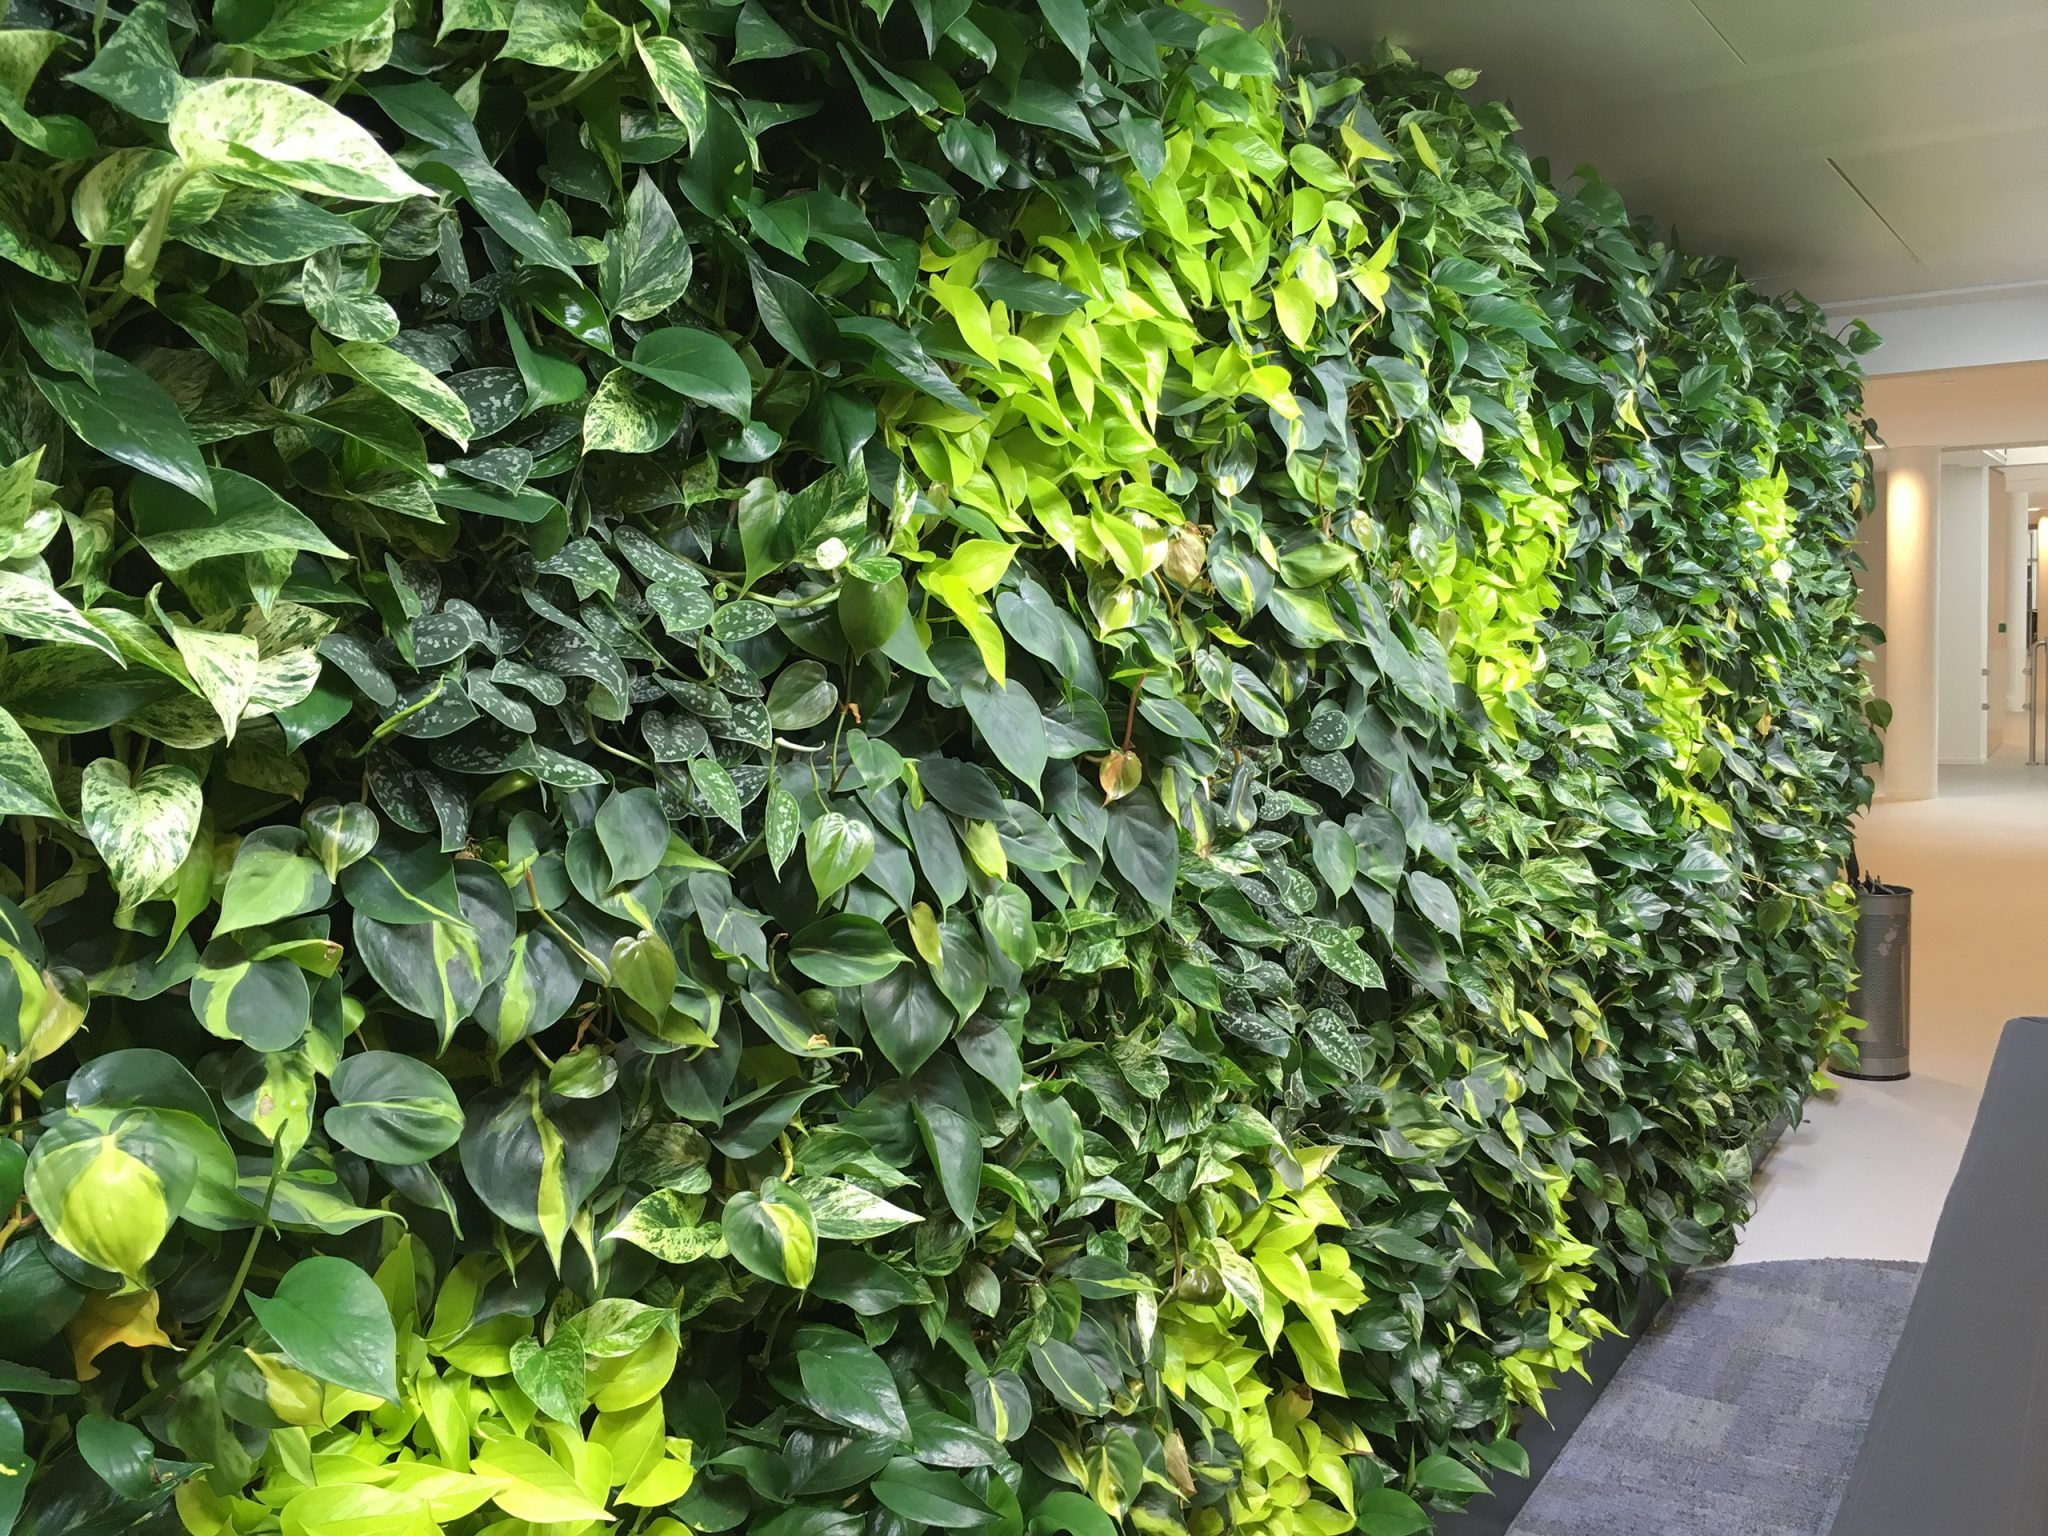 Beau Donu0027t Wait To See Plants Grow But Experience The Real NextGen Living Walls  Impressive Design From Day 1!